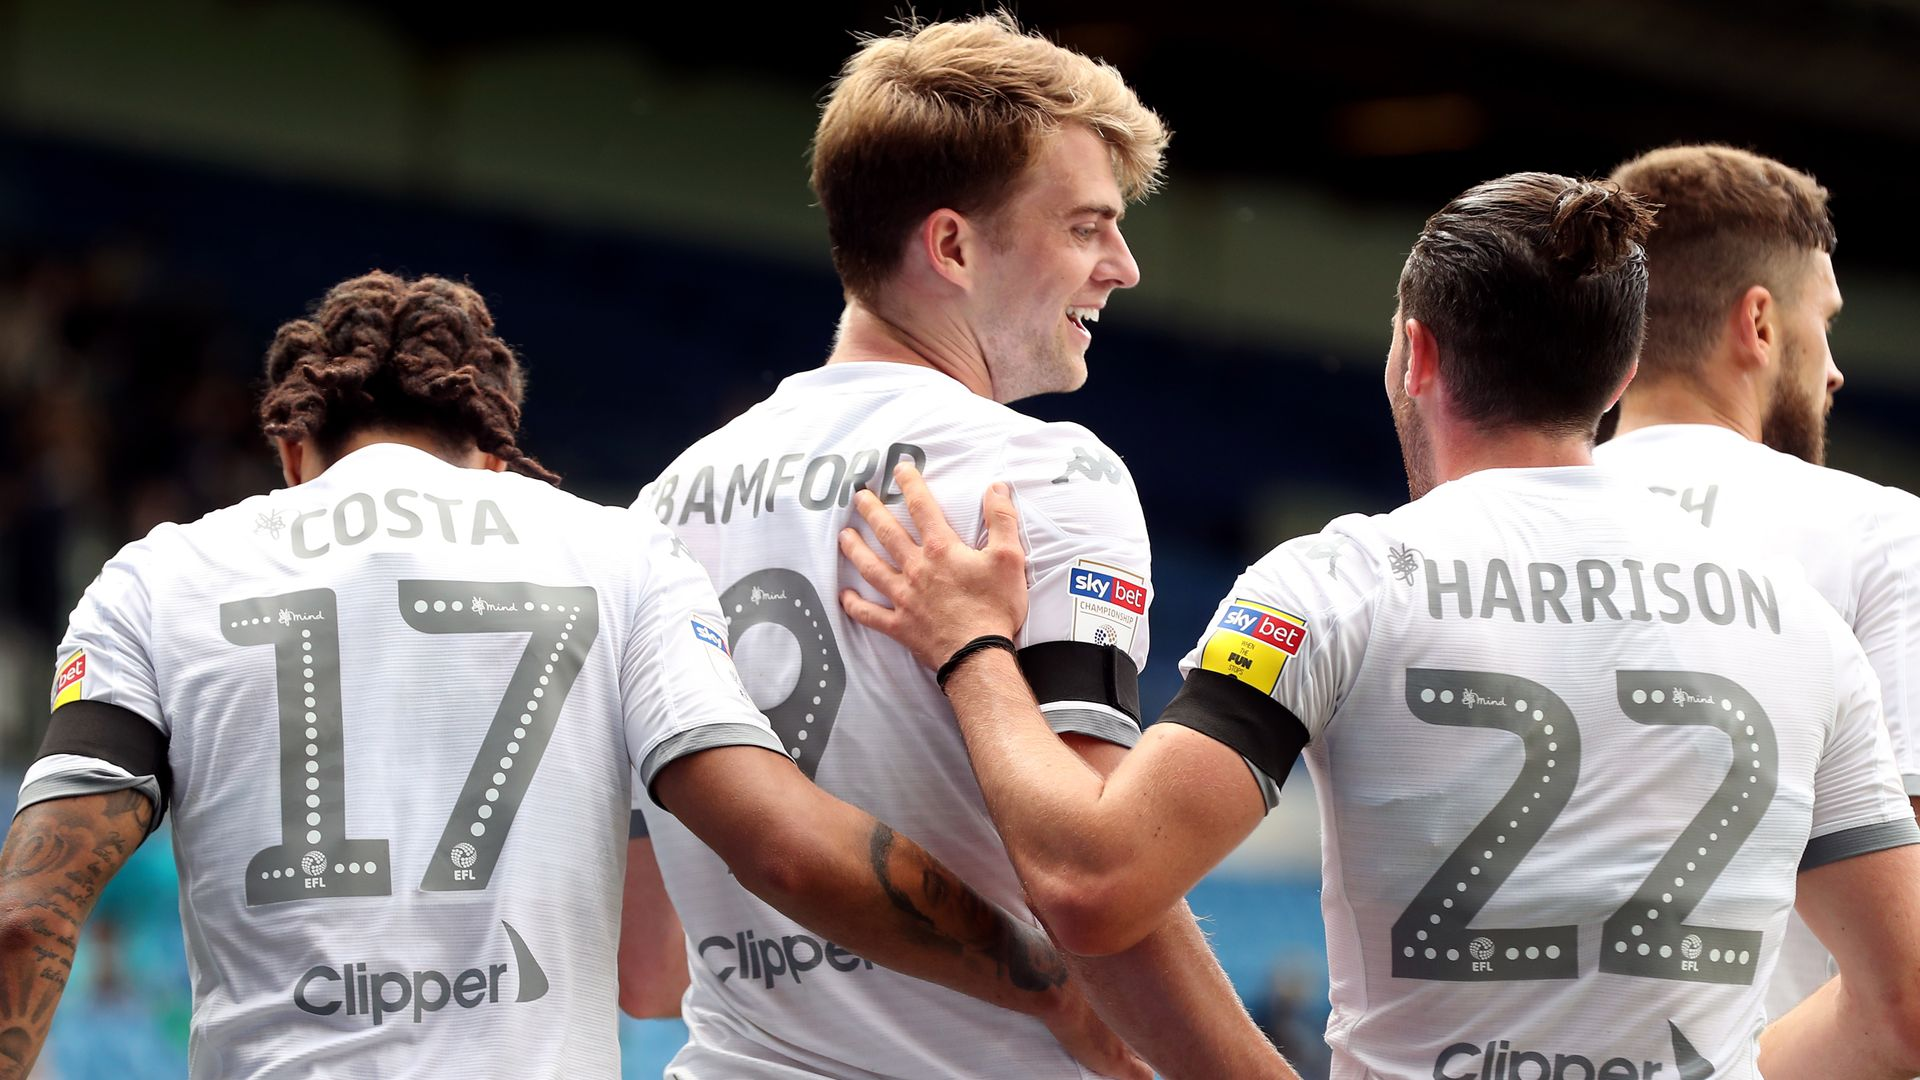 Leeds scrape win to move within one point of PL